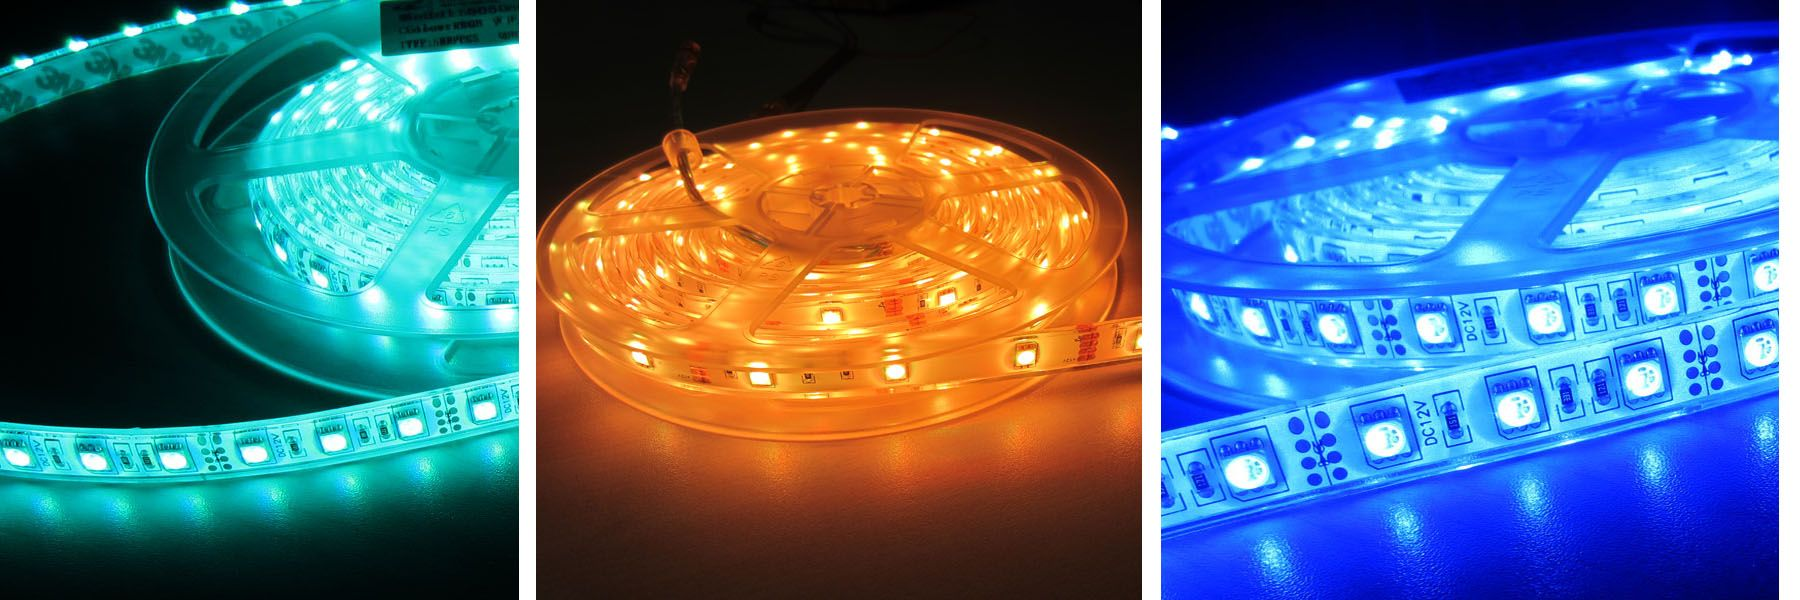 hight resolution of dmx 2 wires small led thin rope light led flexible neon lamp manufacturer from shenzhen china aa1b2f01 5050 led strip light oem product